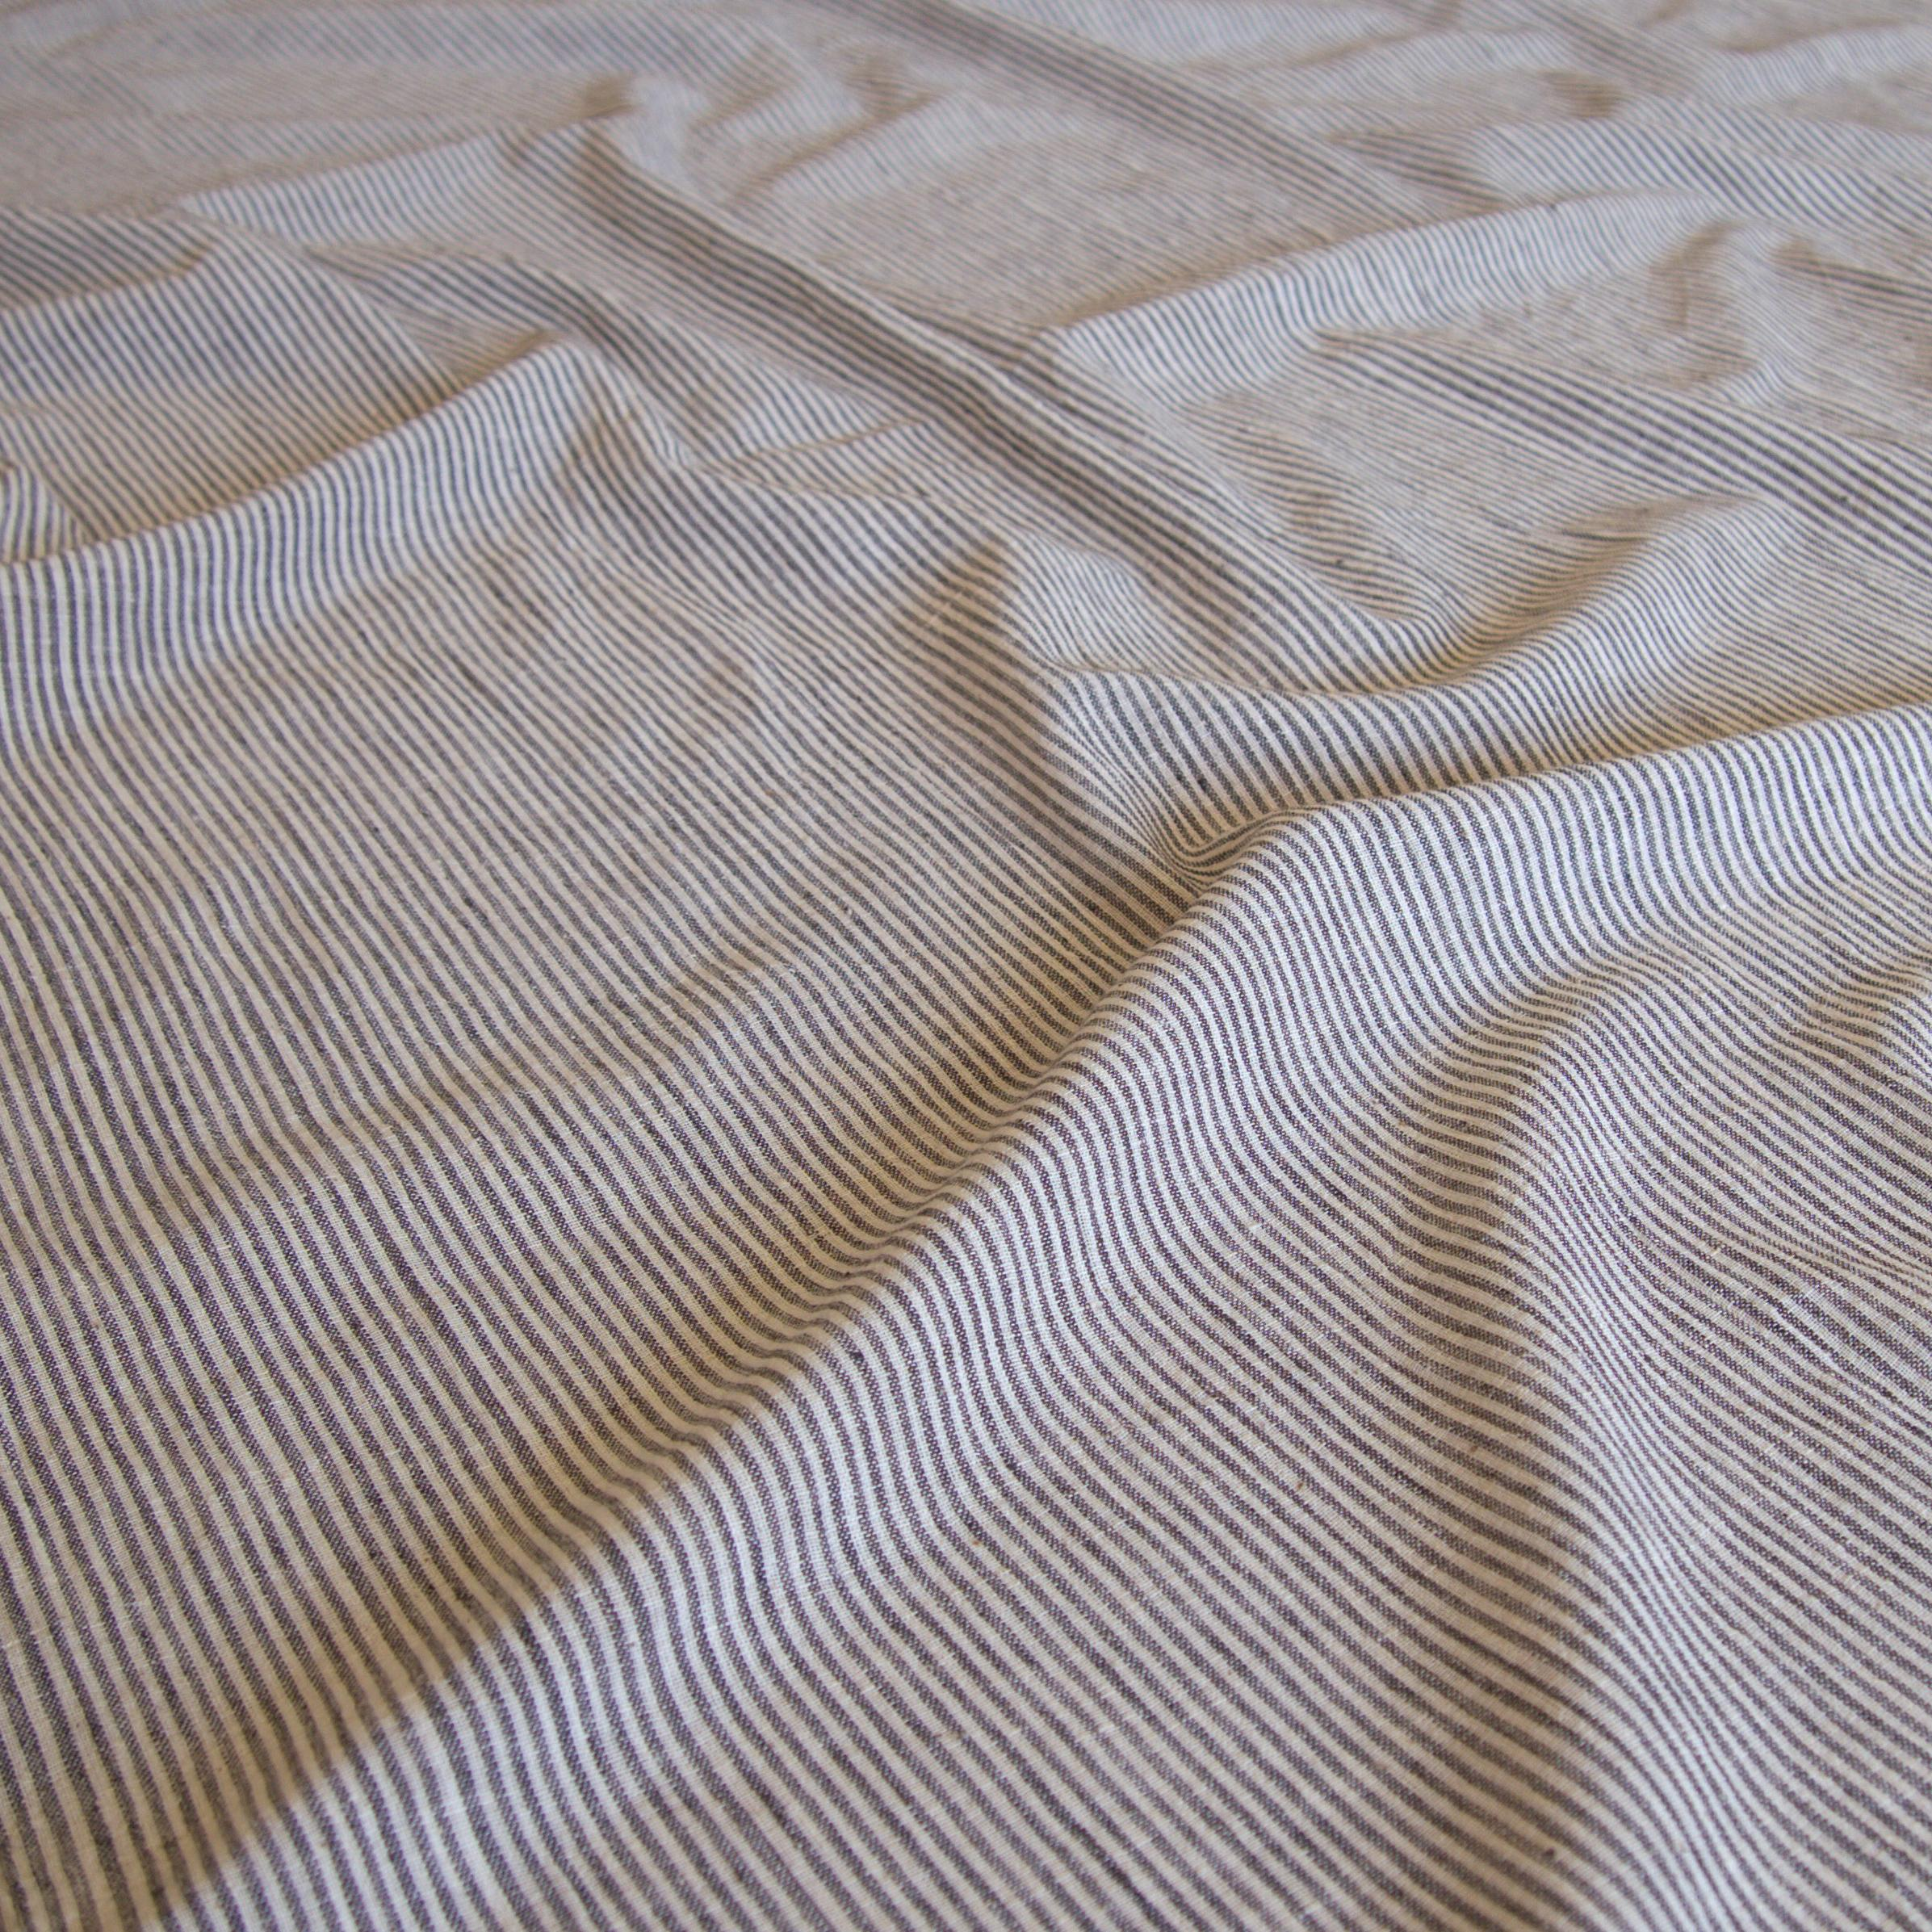 Organic Kala Cotton - Handloom Woven - Natural Dye - Charcoal Black - Stripes - One By One - Contrast